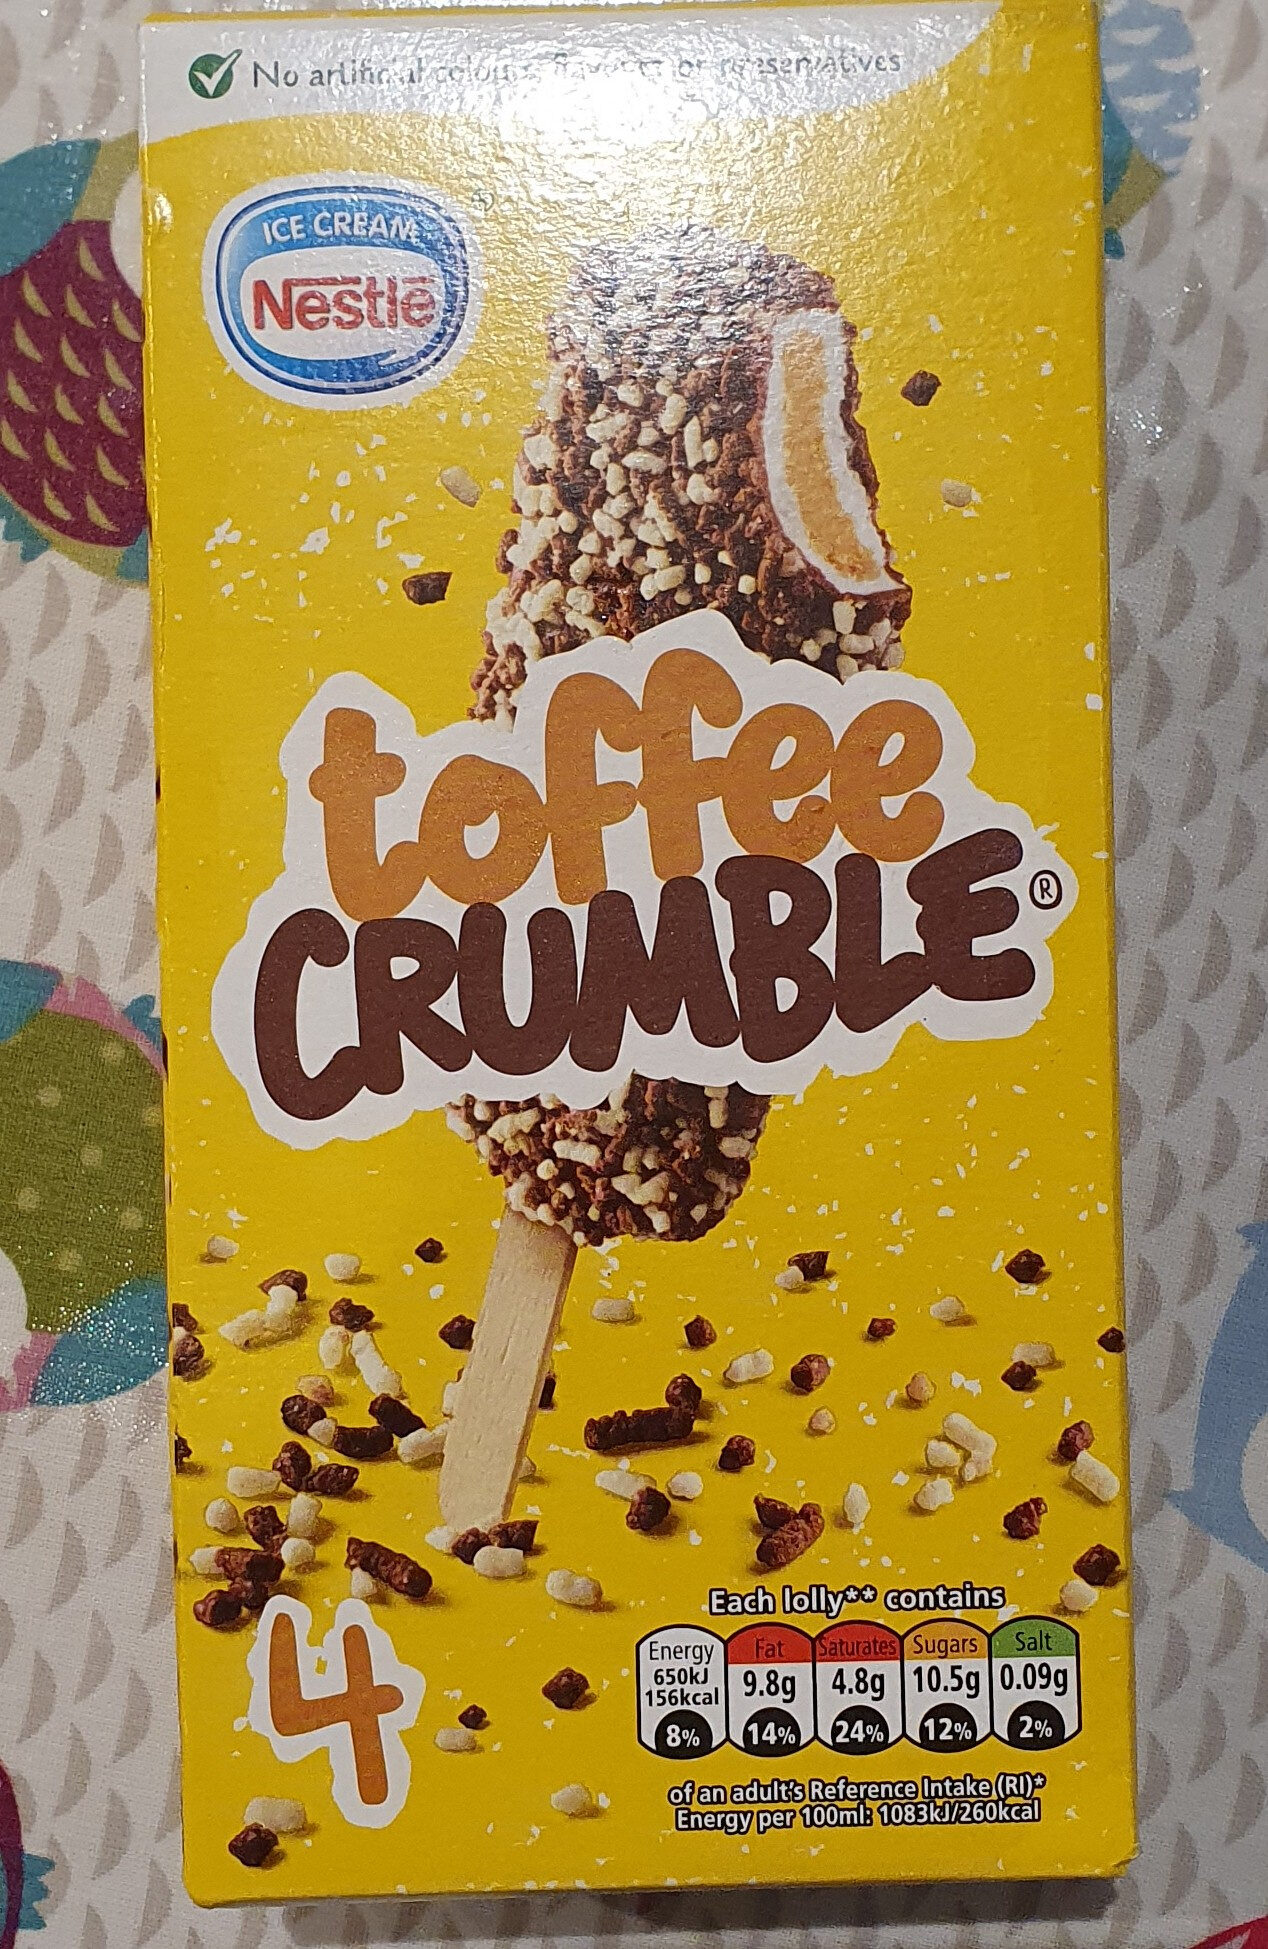 toffee crumble - Product - en